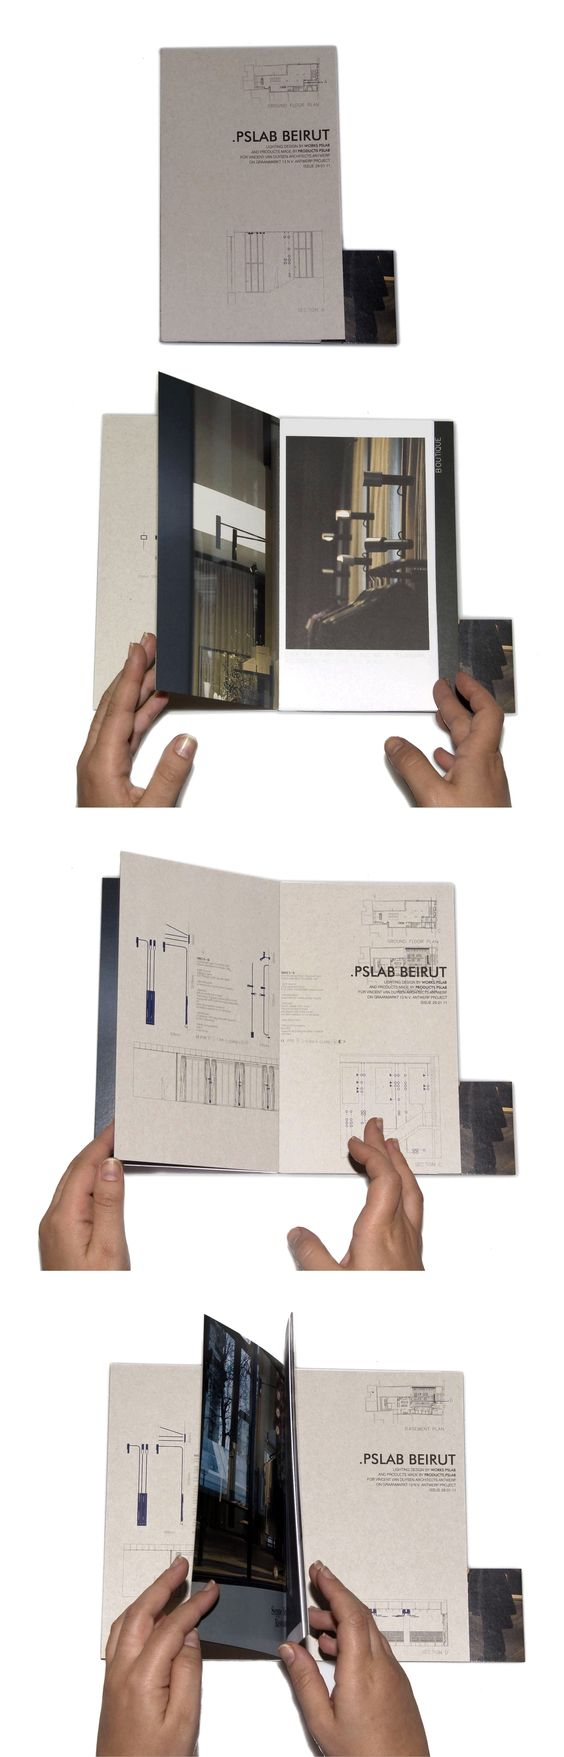 [...]Publication by PSLAB on Graanmarkt 13 event, Antwerp. This book brings together the different elements of a large project realized at Graanmarkt 13 in Antwerp..jpg